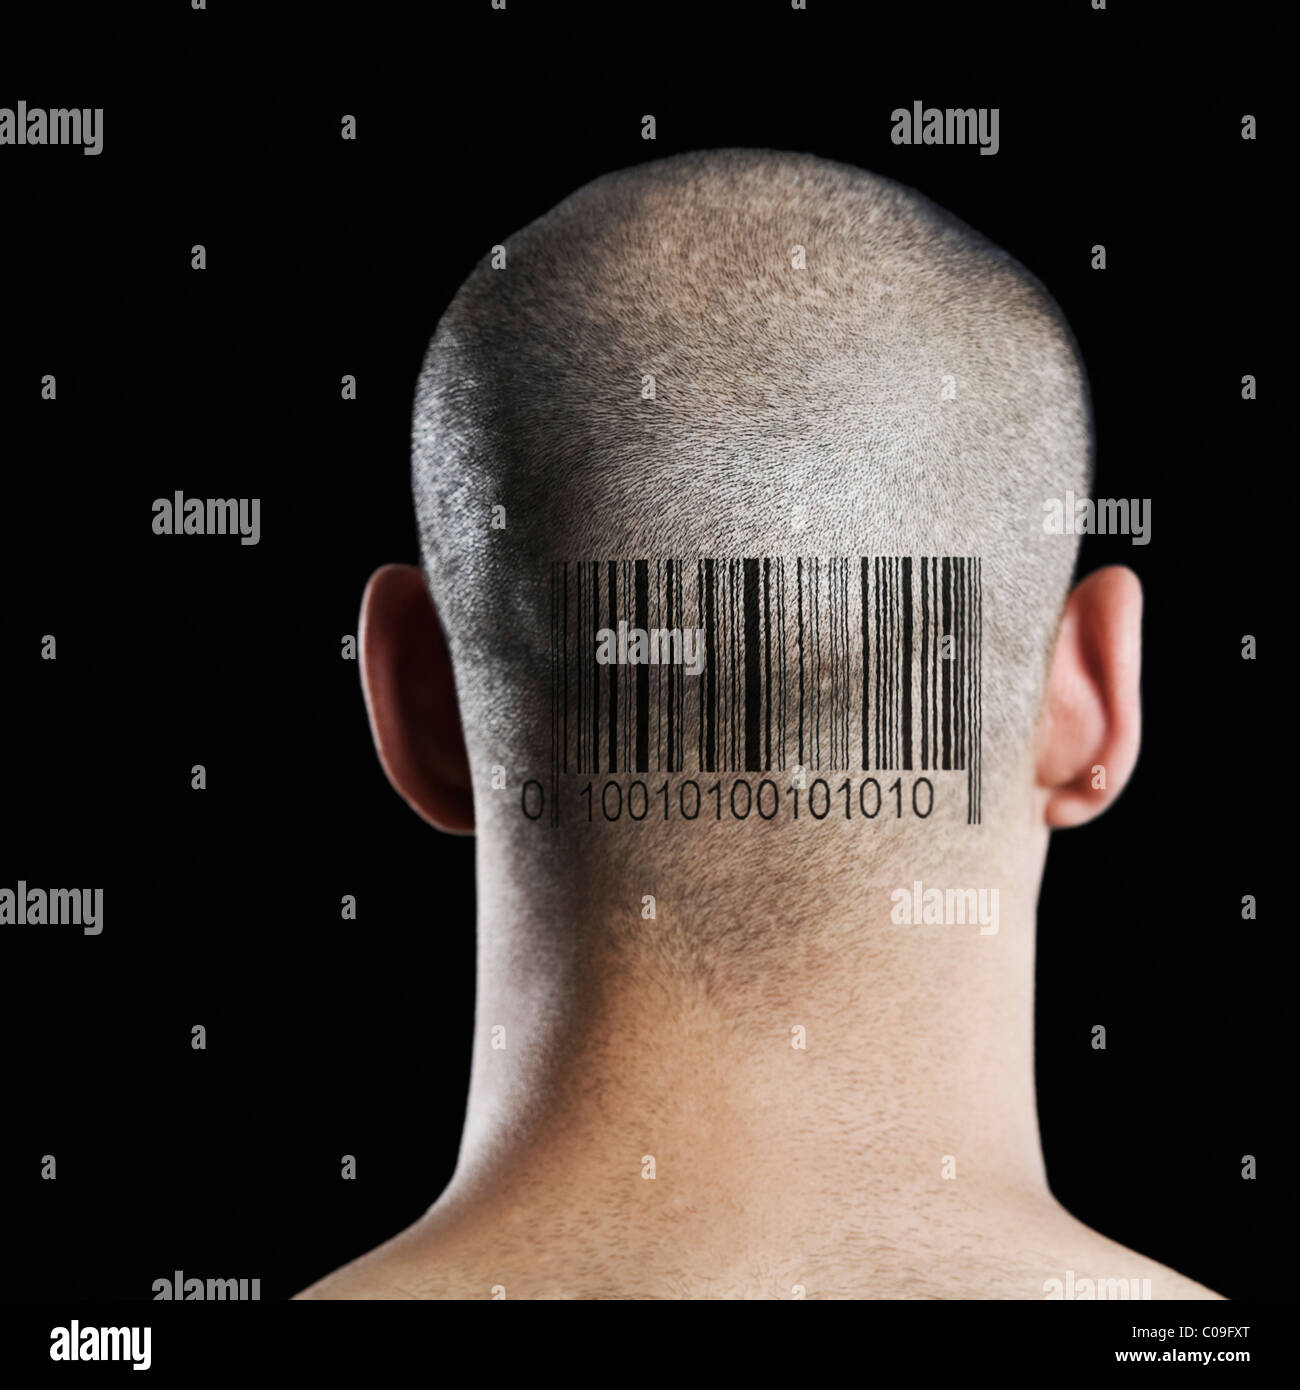 Security Barcode High Resolution Stock Photography And Images Alamy